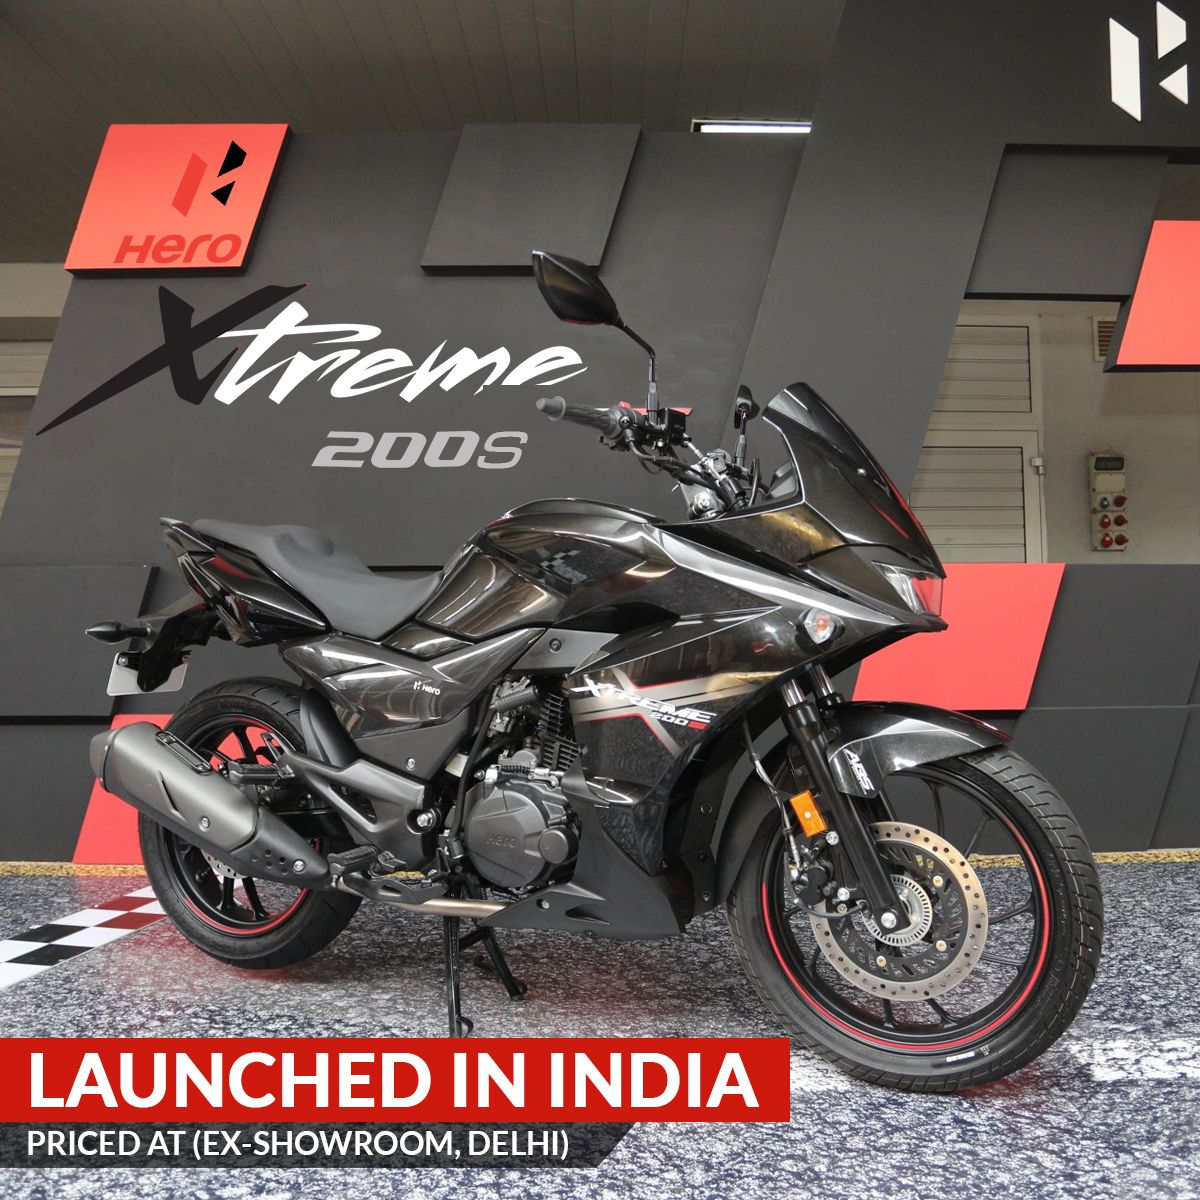 Hero Motocorp Has Launched The All New Xtreme 200s Full Faired